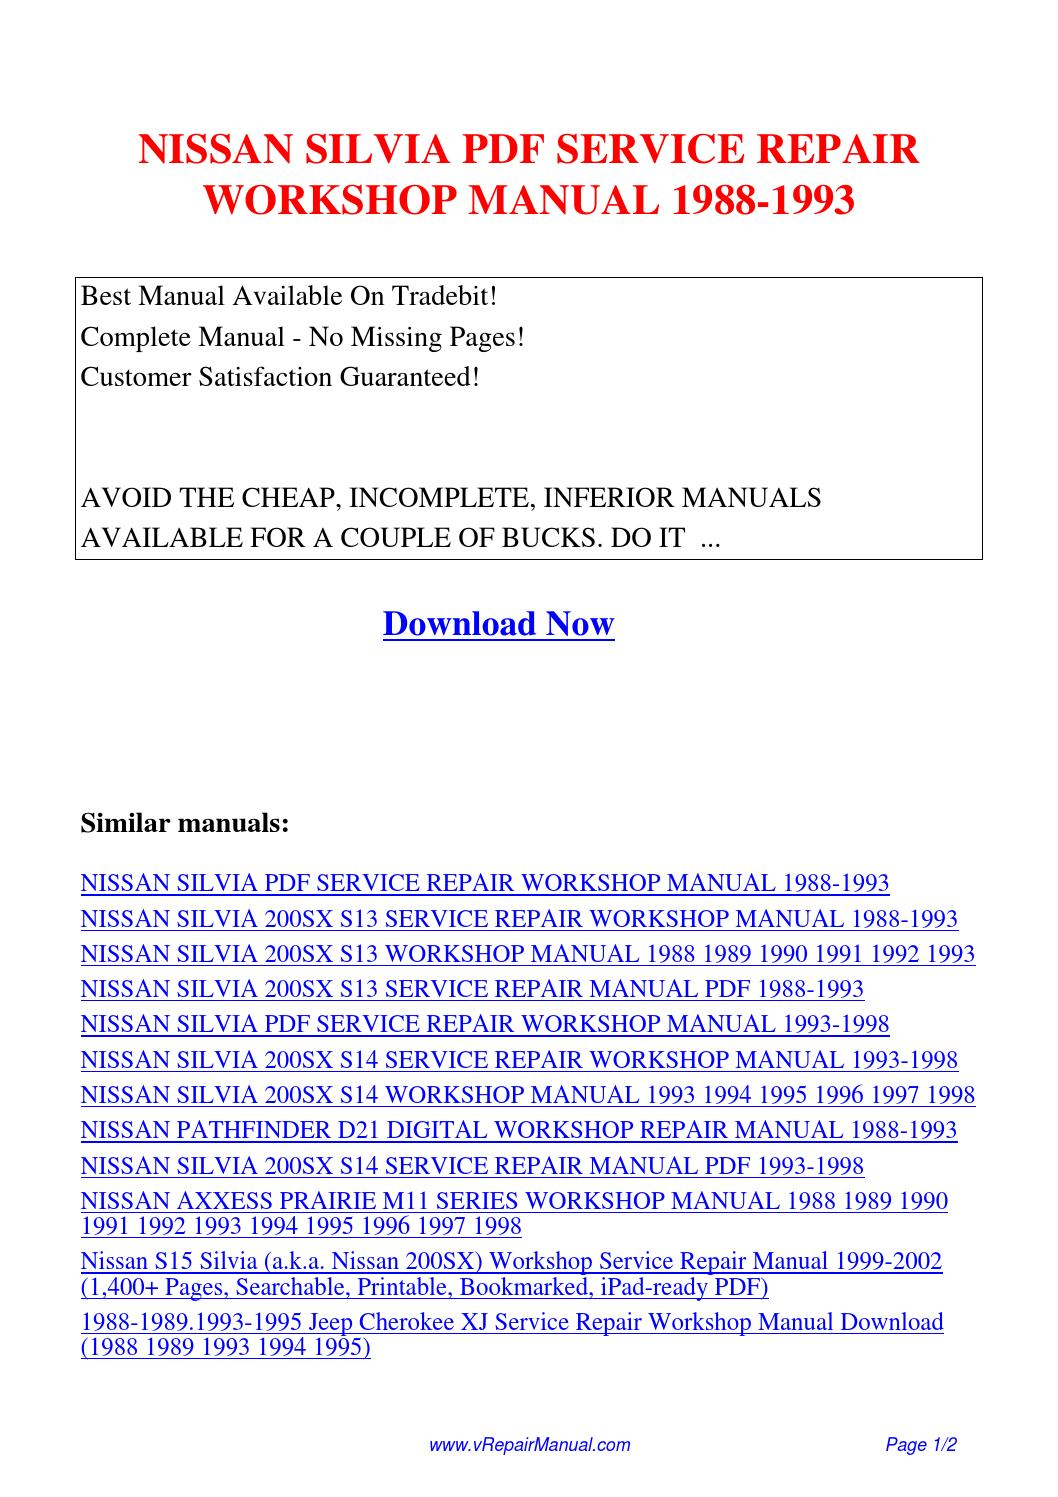 NISSAN SILVIA SERVICE REPAIR WORKSHOP MANUAL 1988-1993.pdf by David Zhang -  issuu